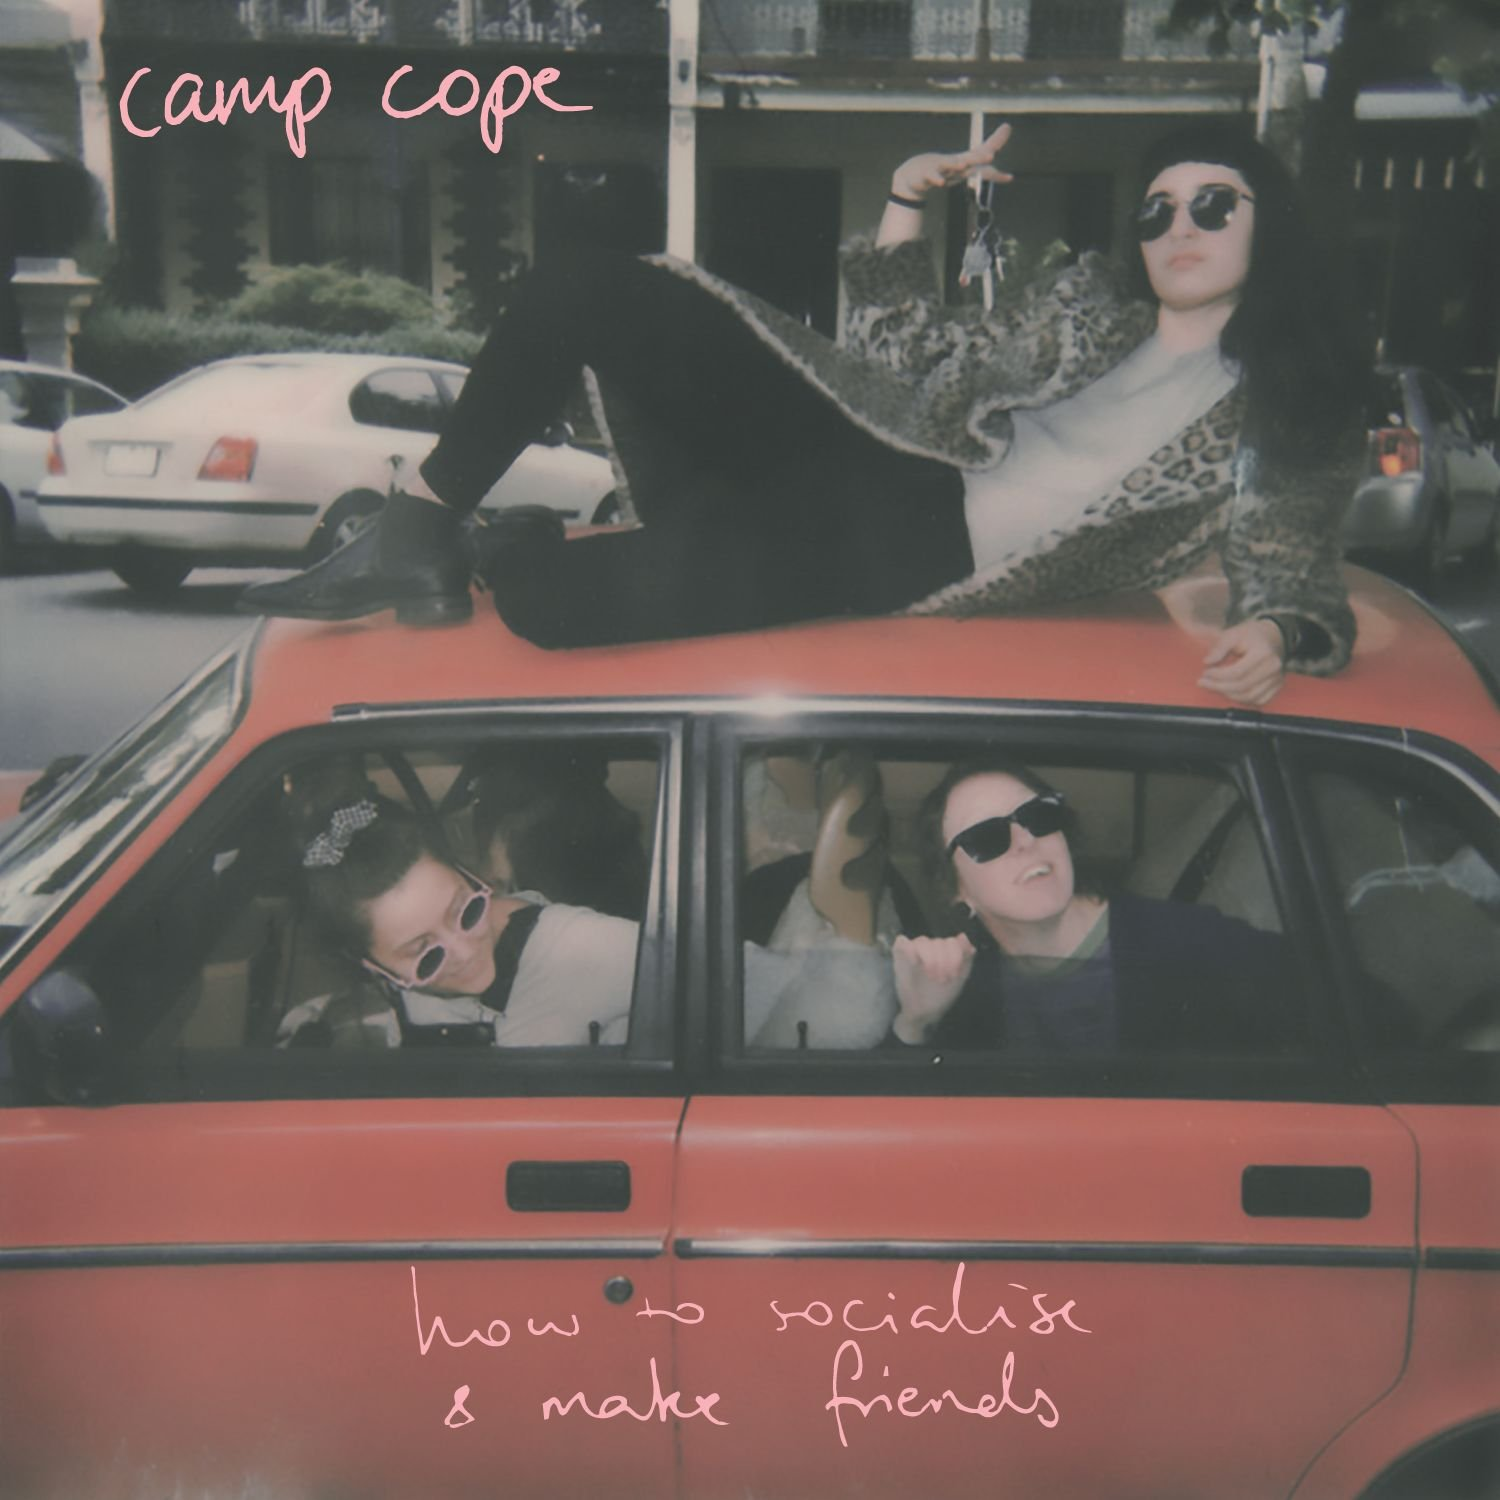 Cassette : Camp Cope - How To Socialise & Make Friends (Cassette)